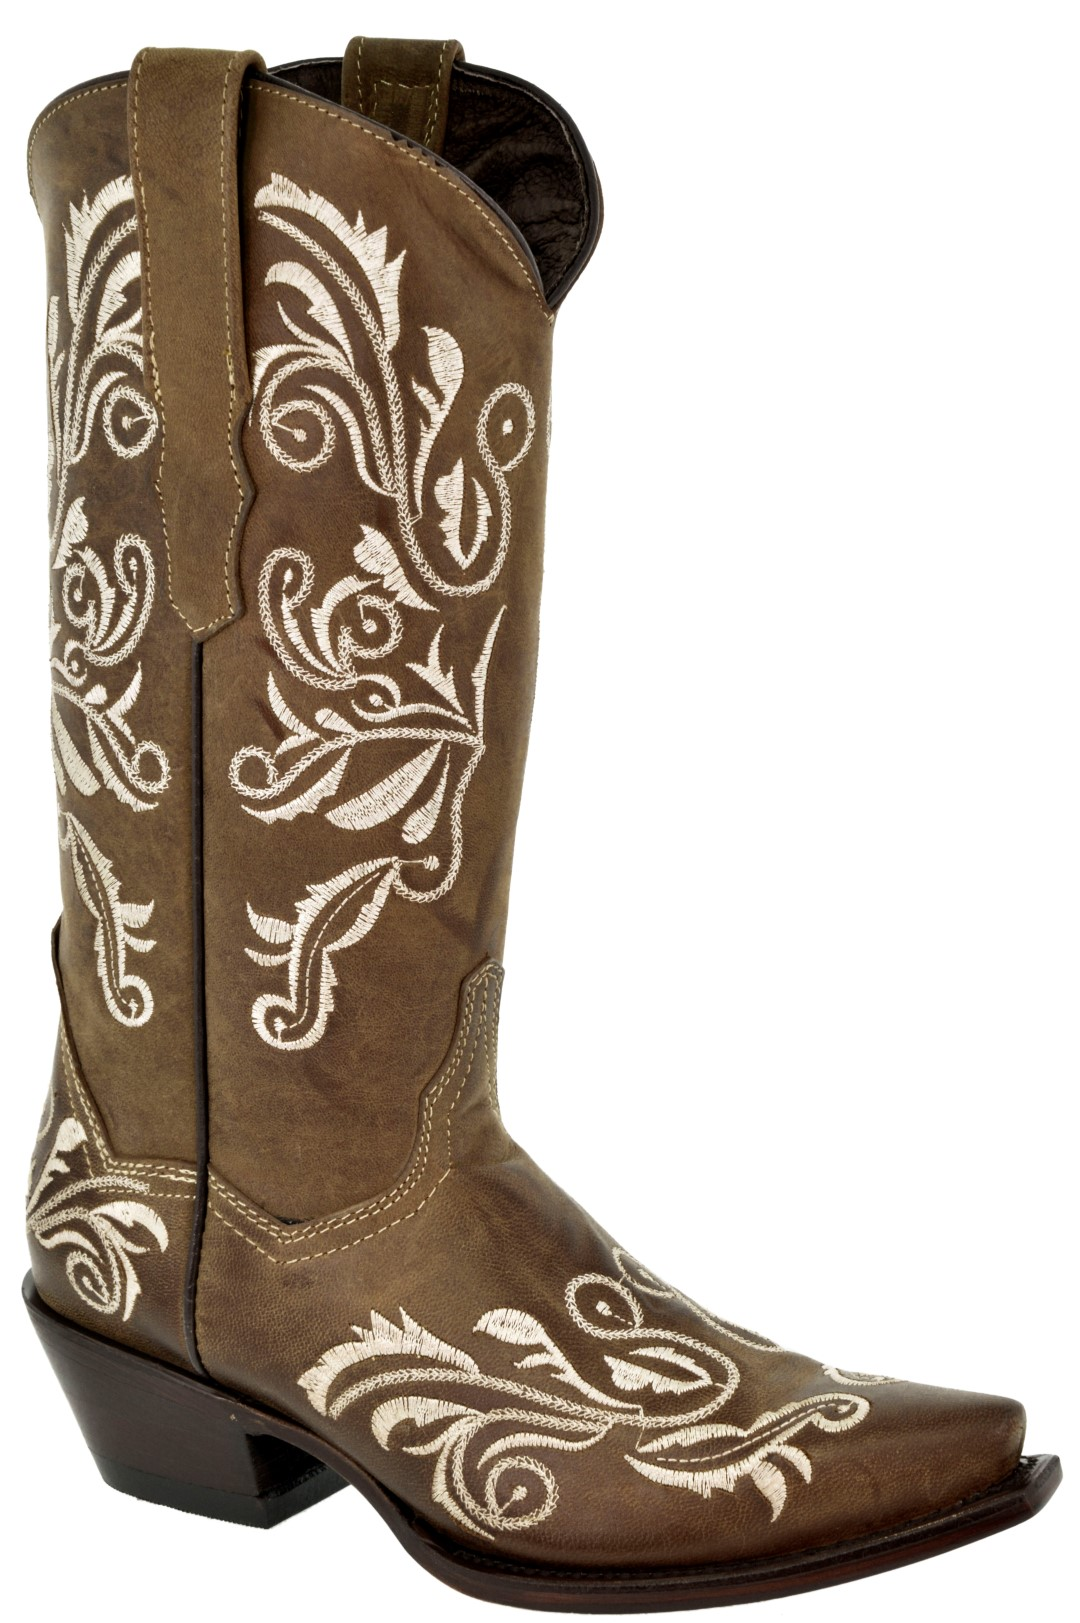 Birthday Present Tony Lama Womens Black Elko Leather 15in Embroidered  Western Boots 6070L